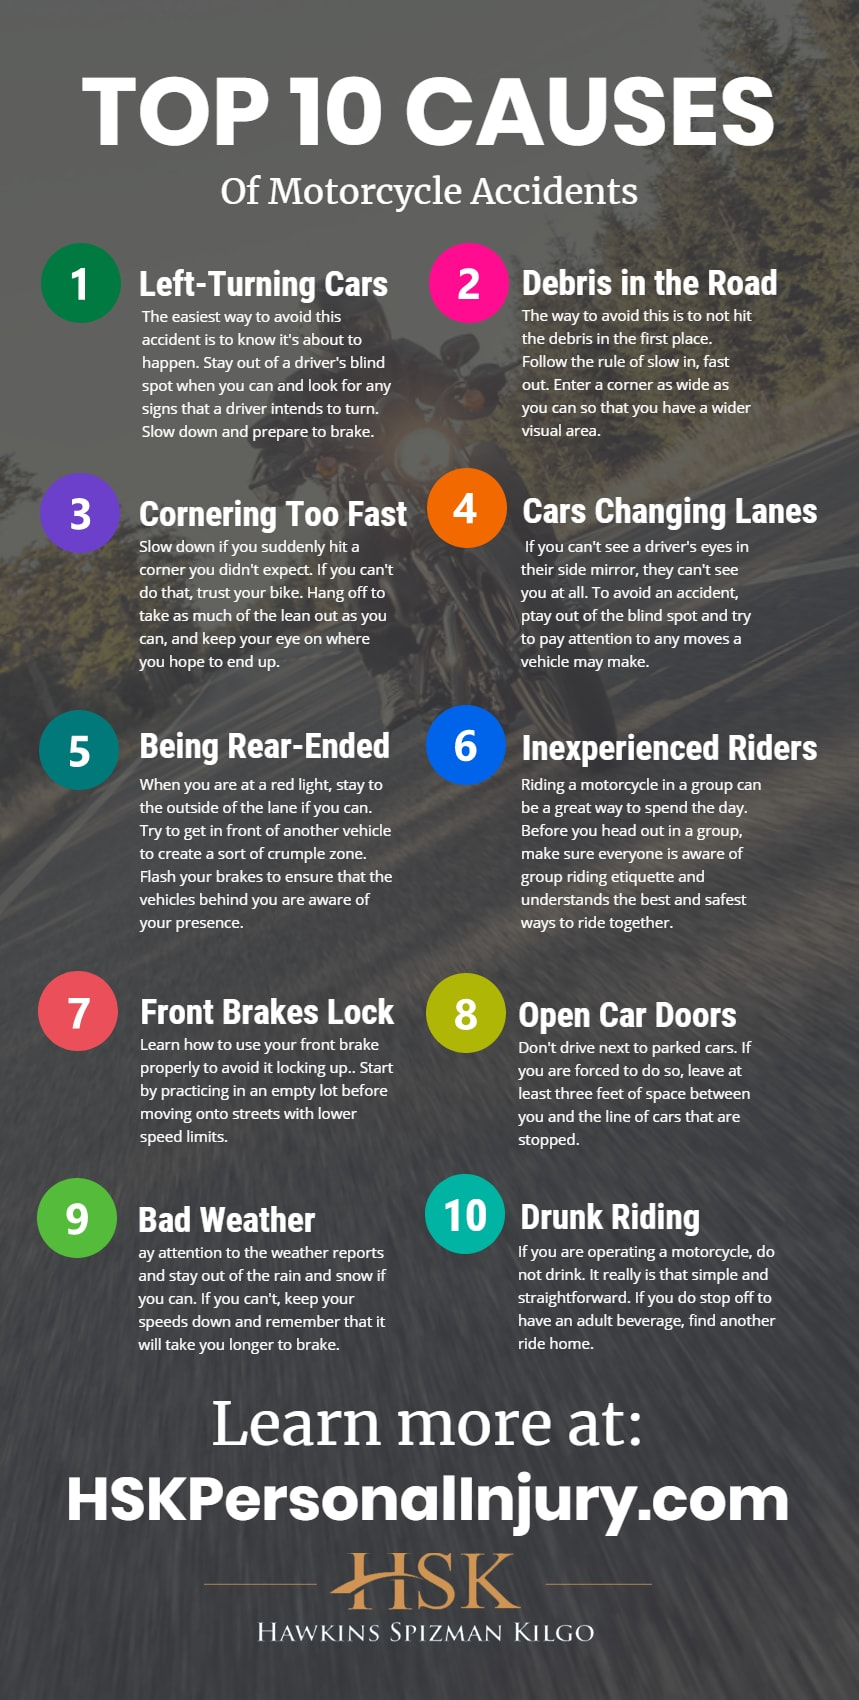 hsk top 10 causes of motorcycle accidents